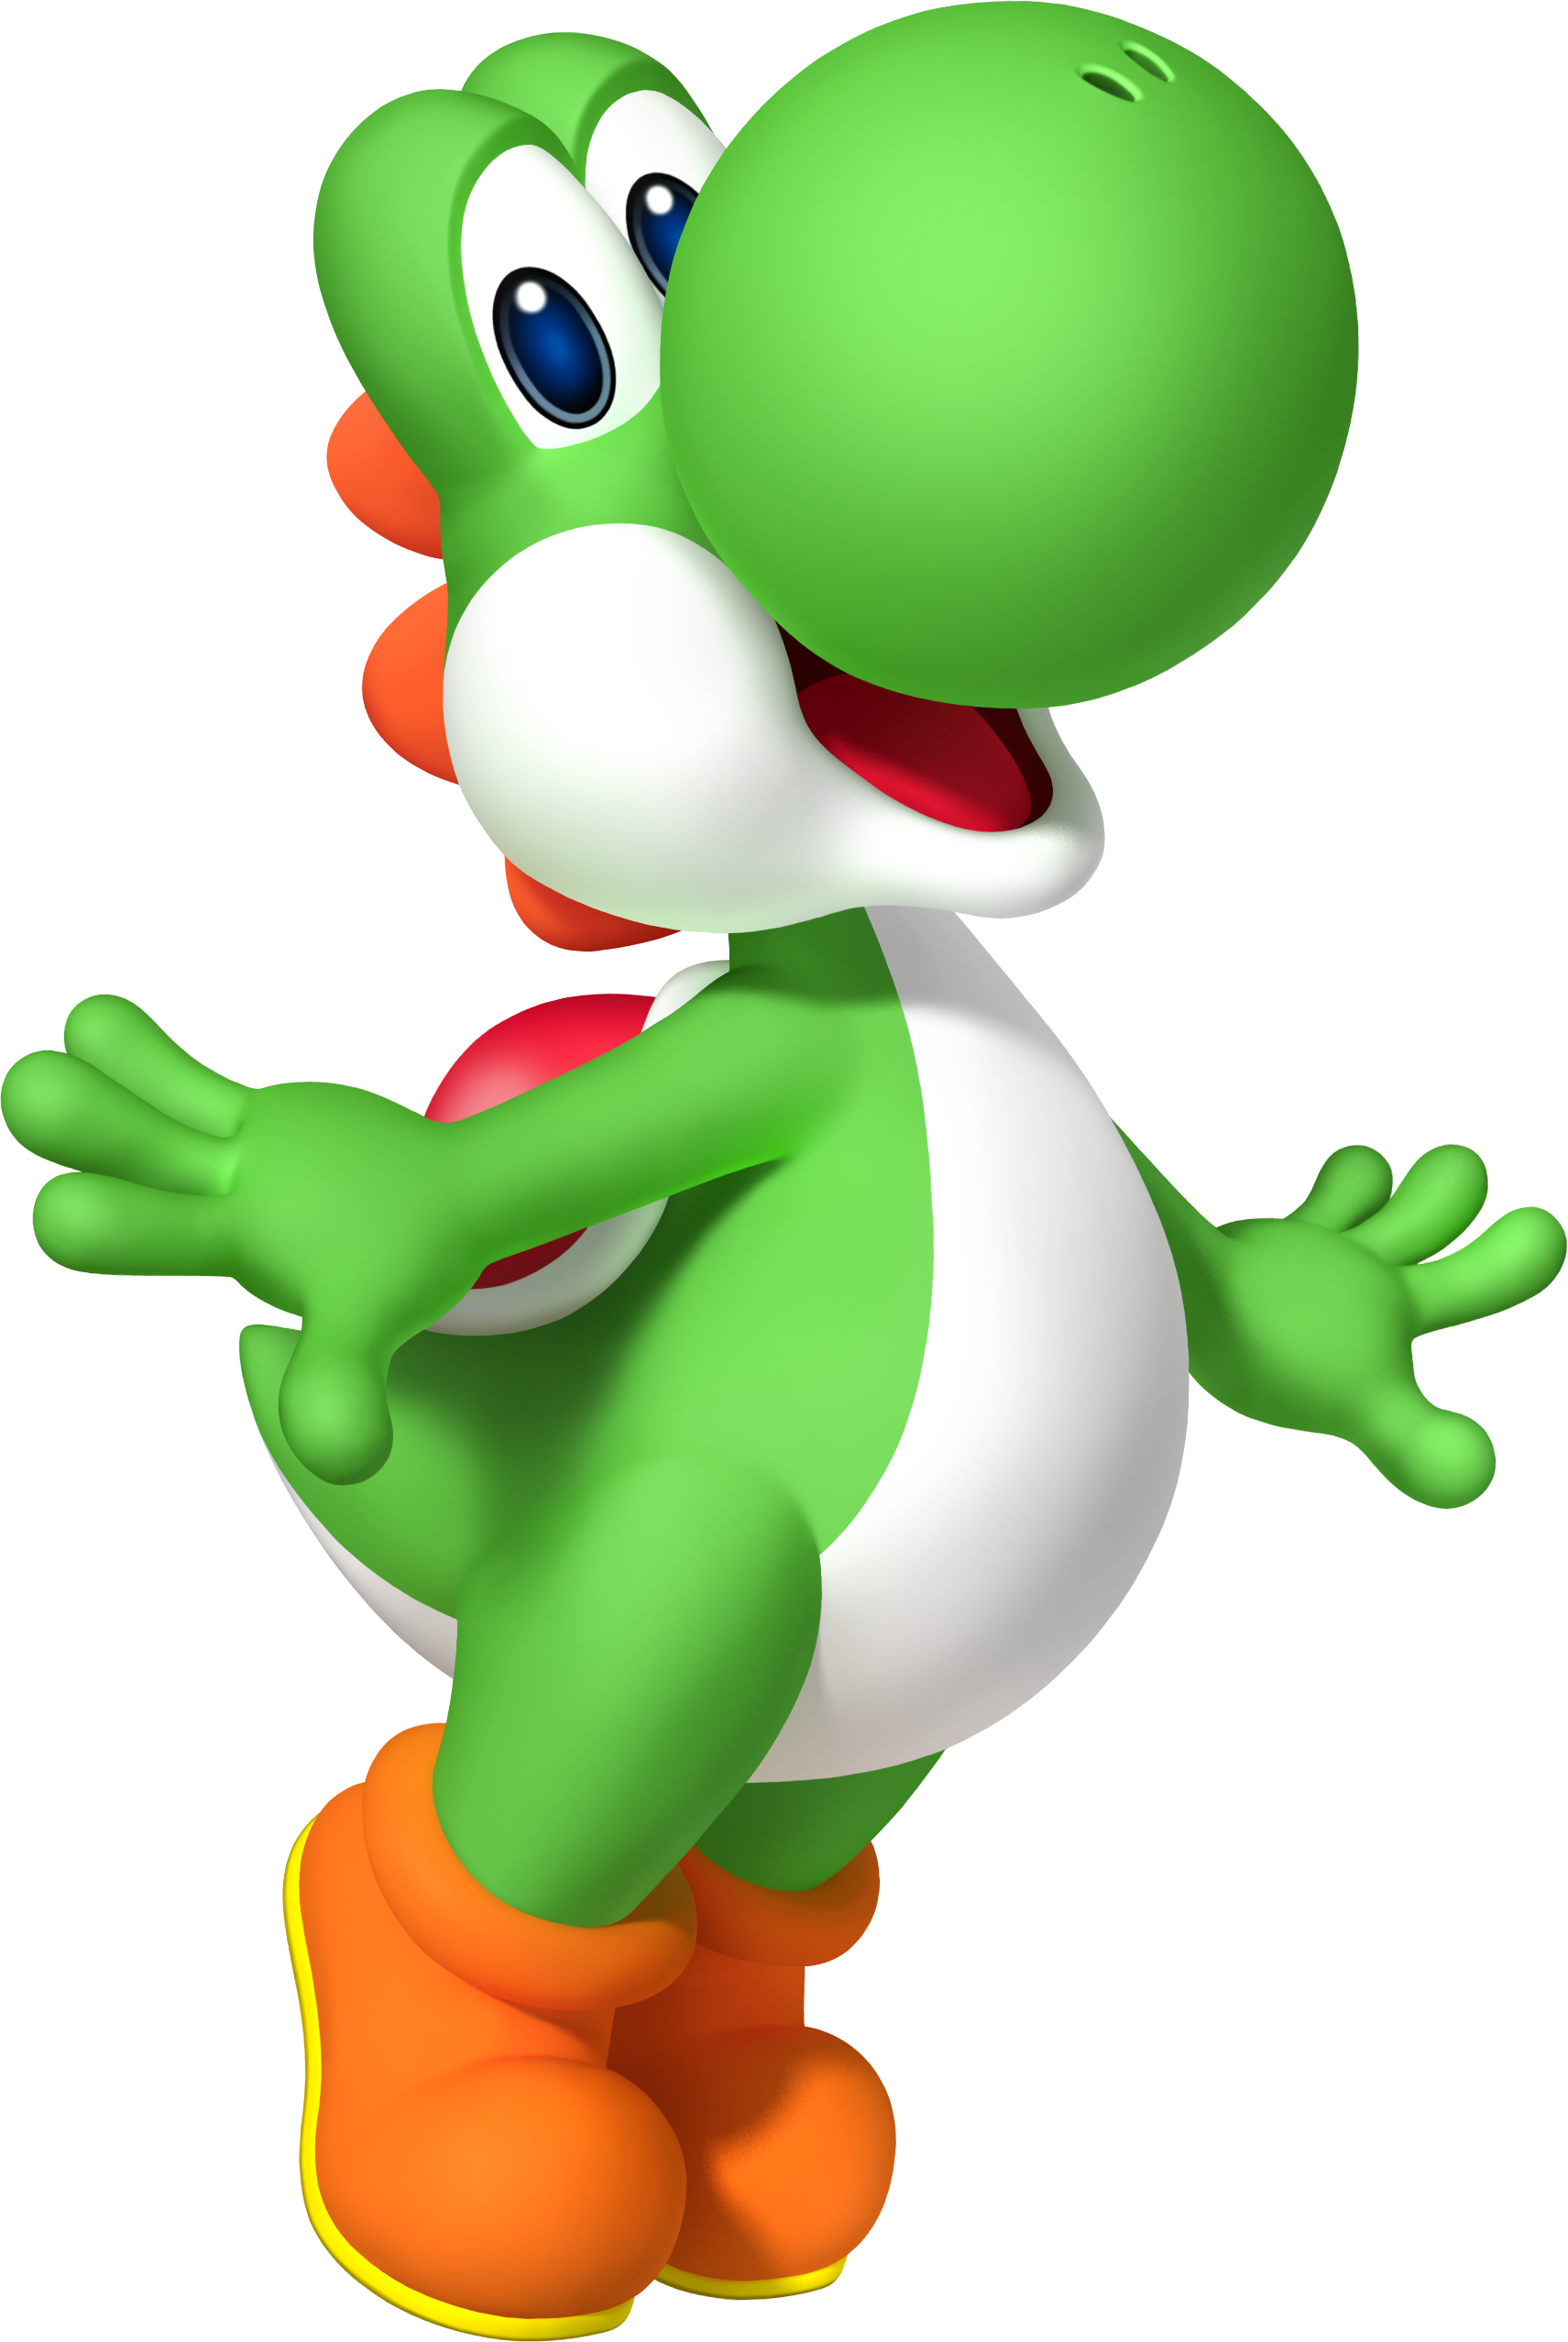 Yoshi Super Mario Character Ultimate Pop Culture Wiki Fandom Powered By Wikia